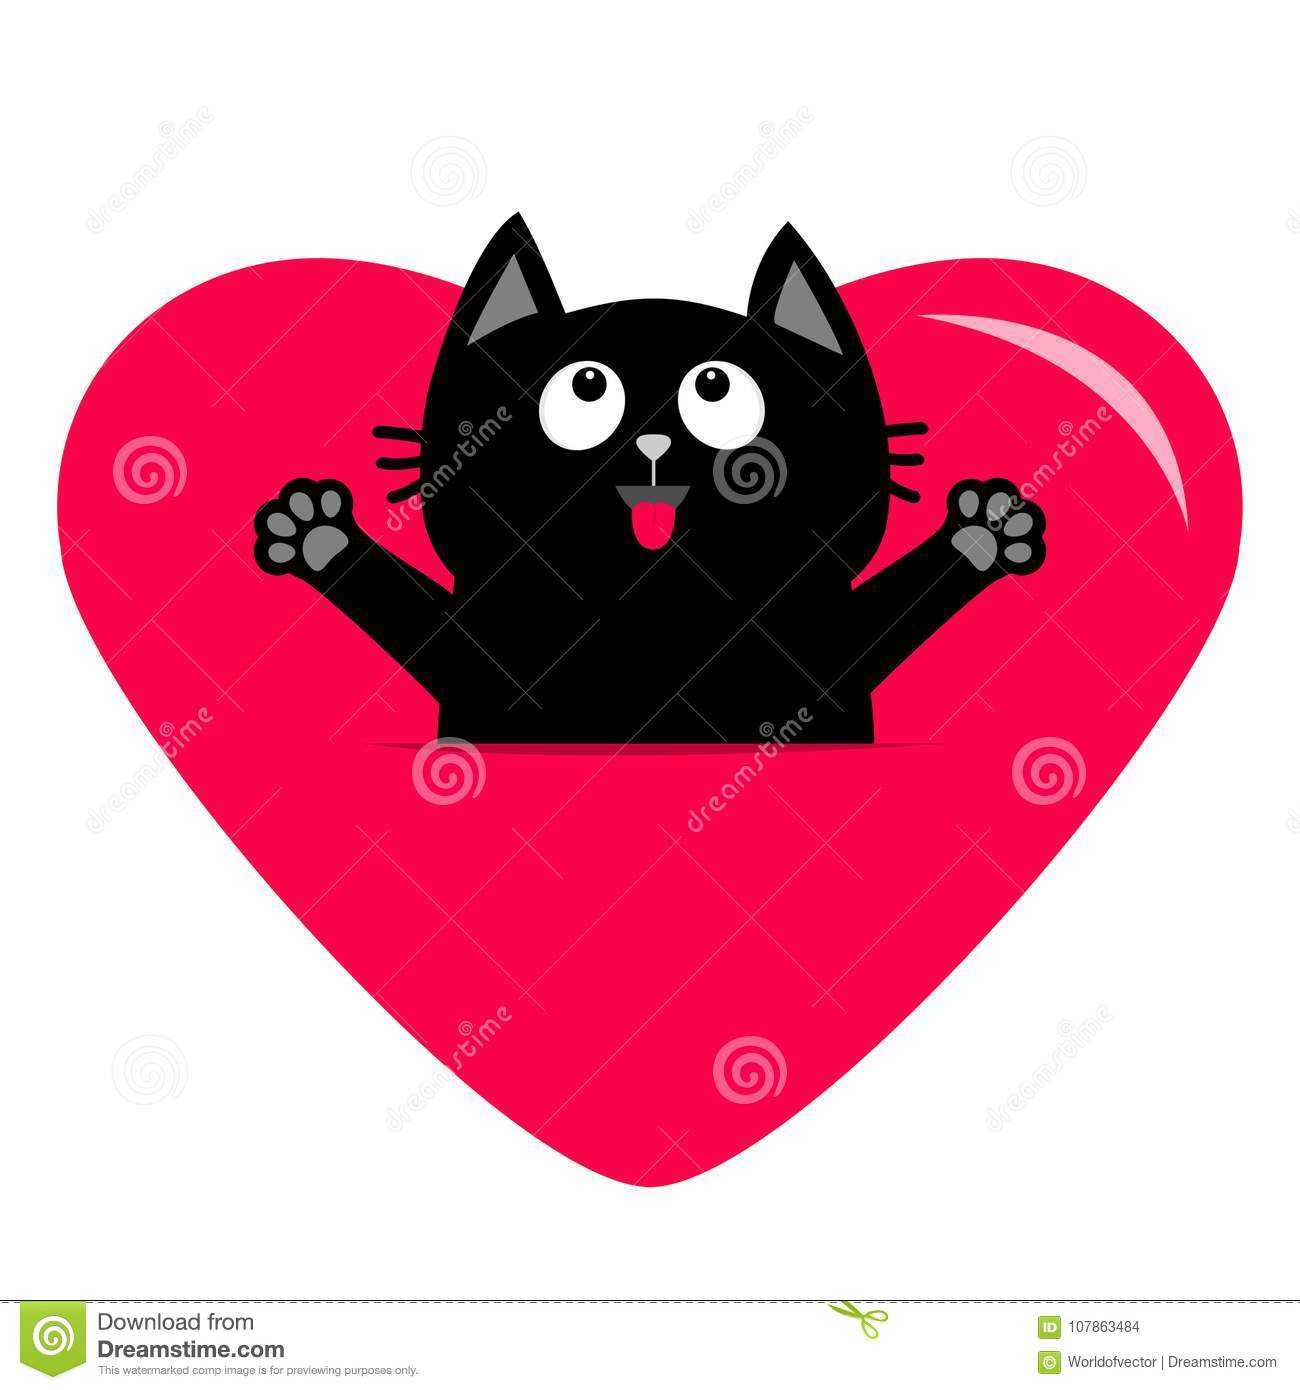 087fd53a9b4 Royalty-Free Vector. Black cat and big heart icon. Cute funny cartoon  character. Happy Valentines day.